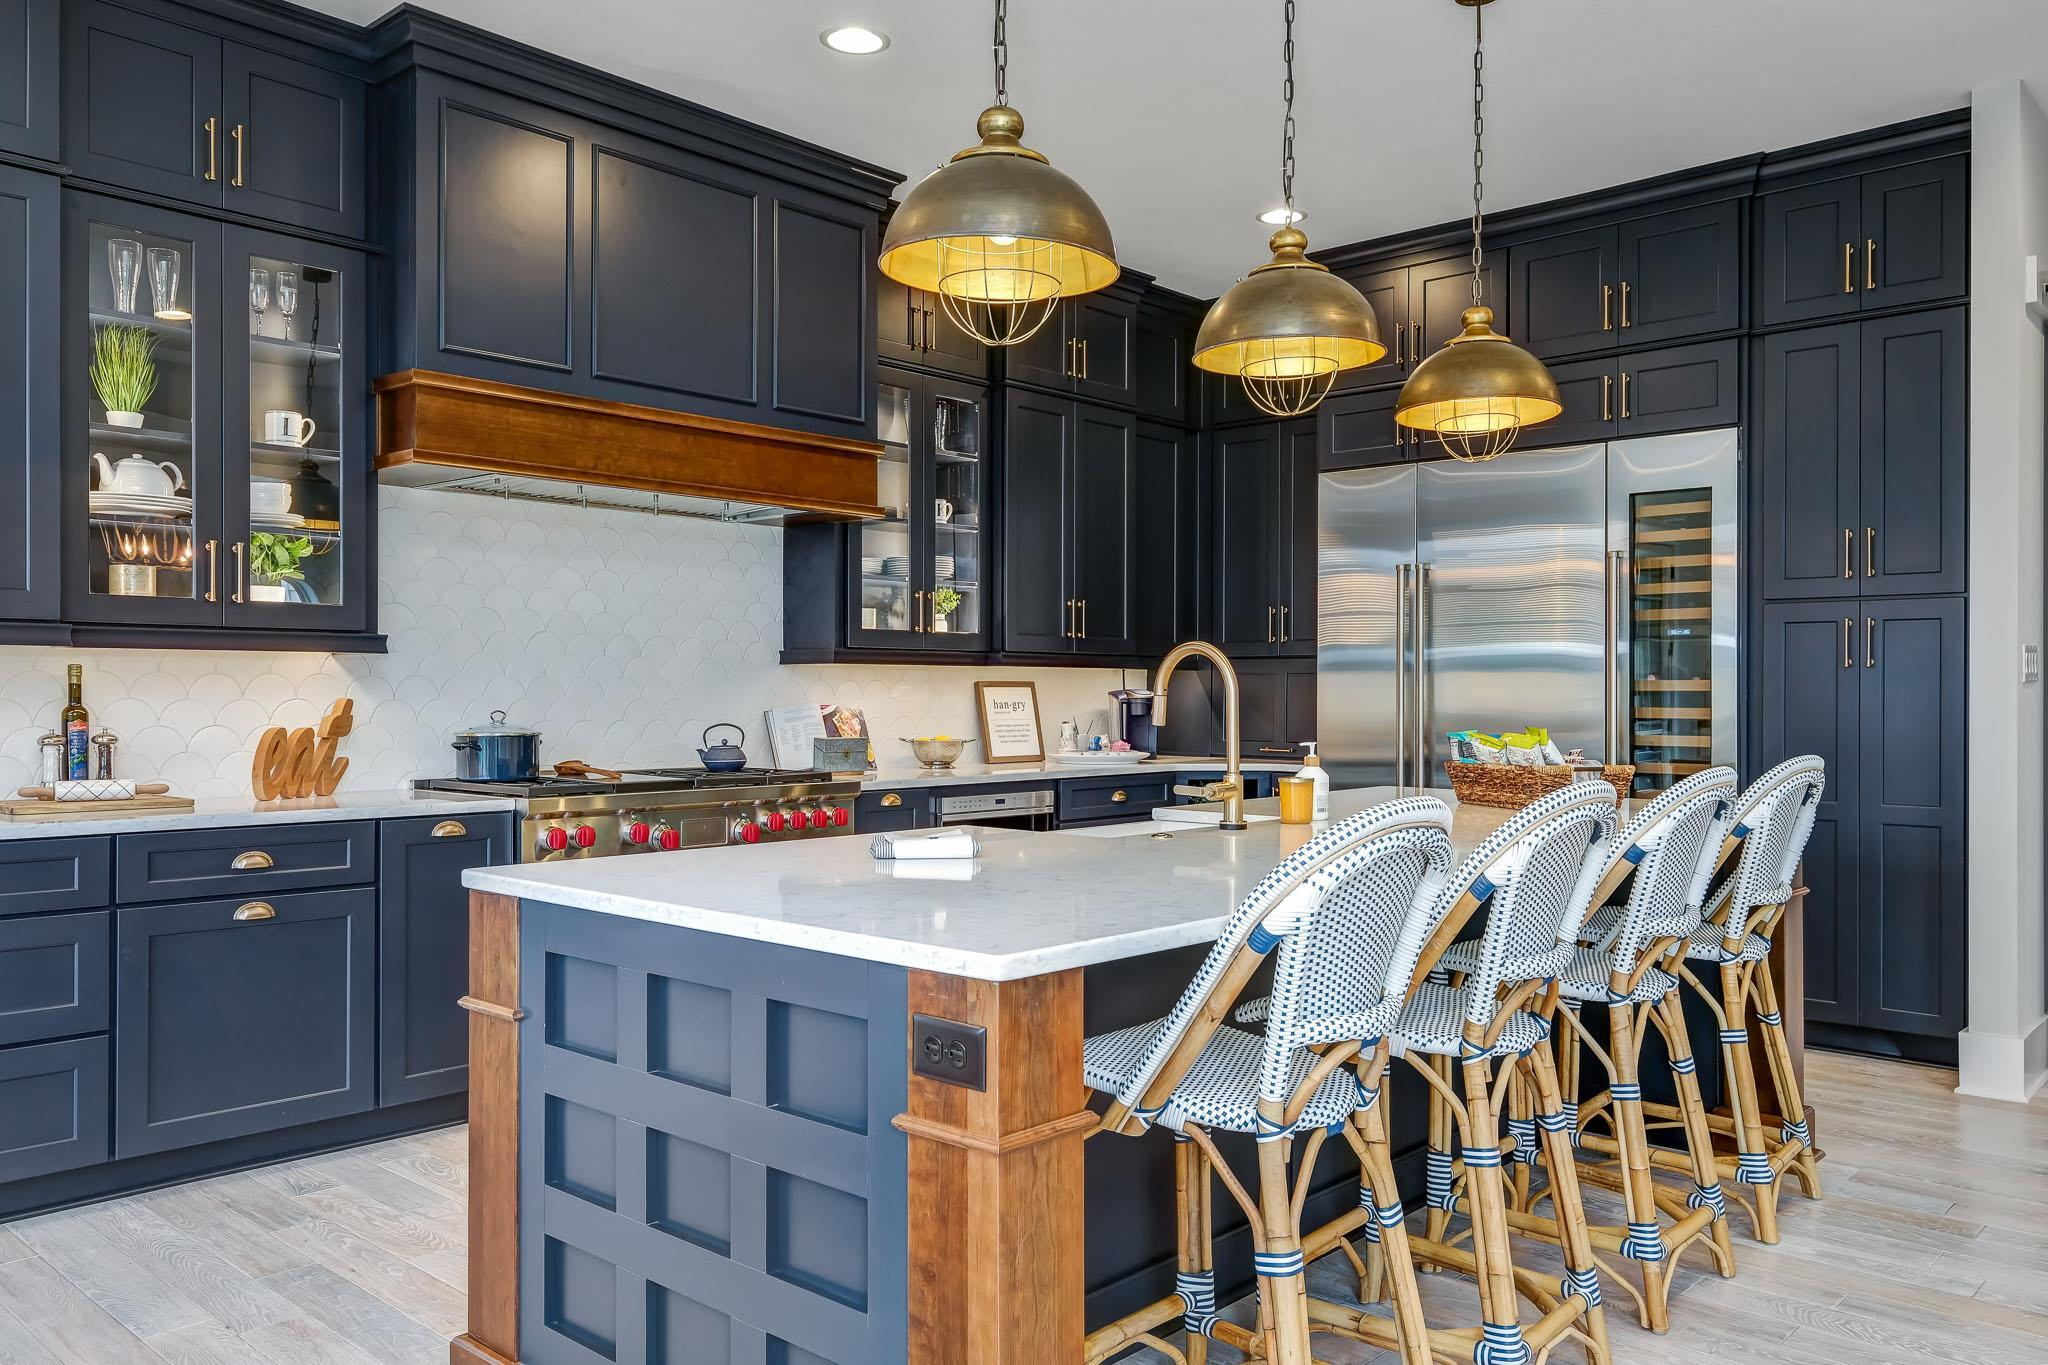 Kitchen featured in the Portland By Infinity Custom Homes in Pittsburgh, PA